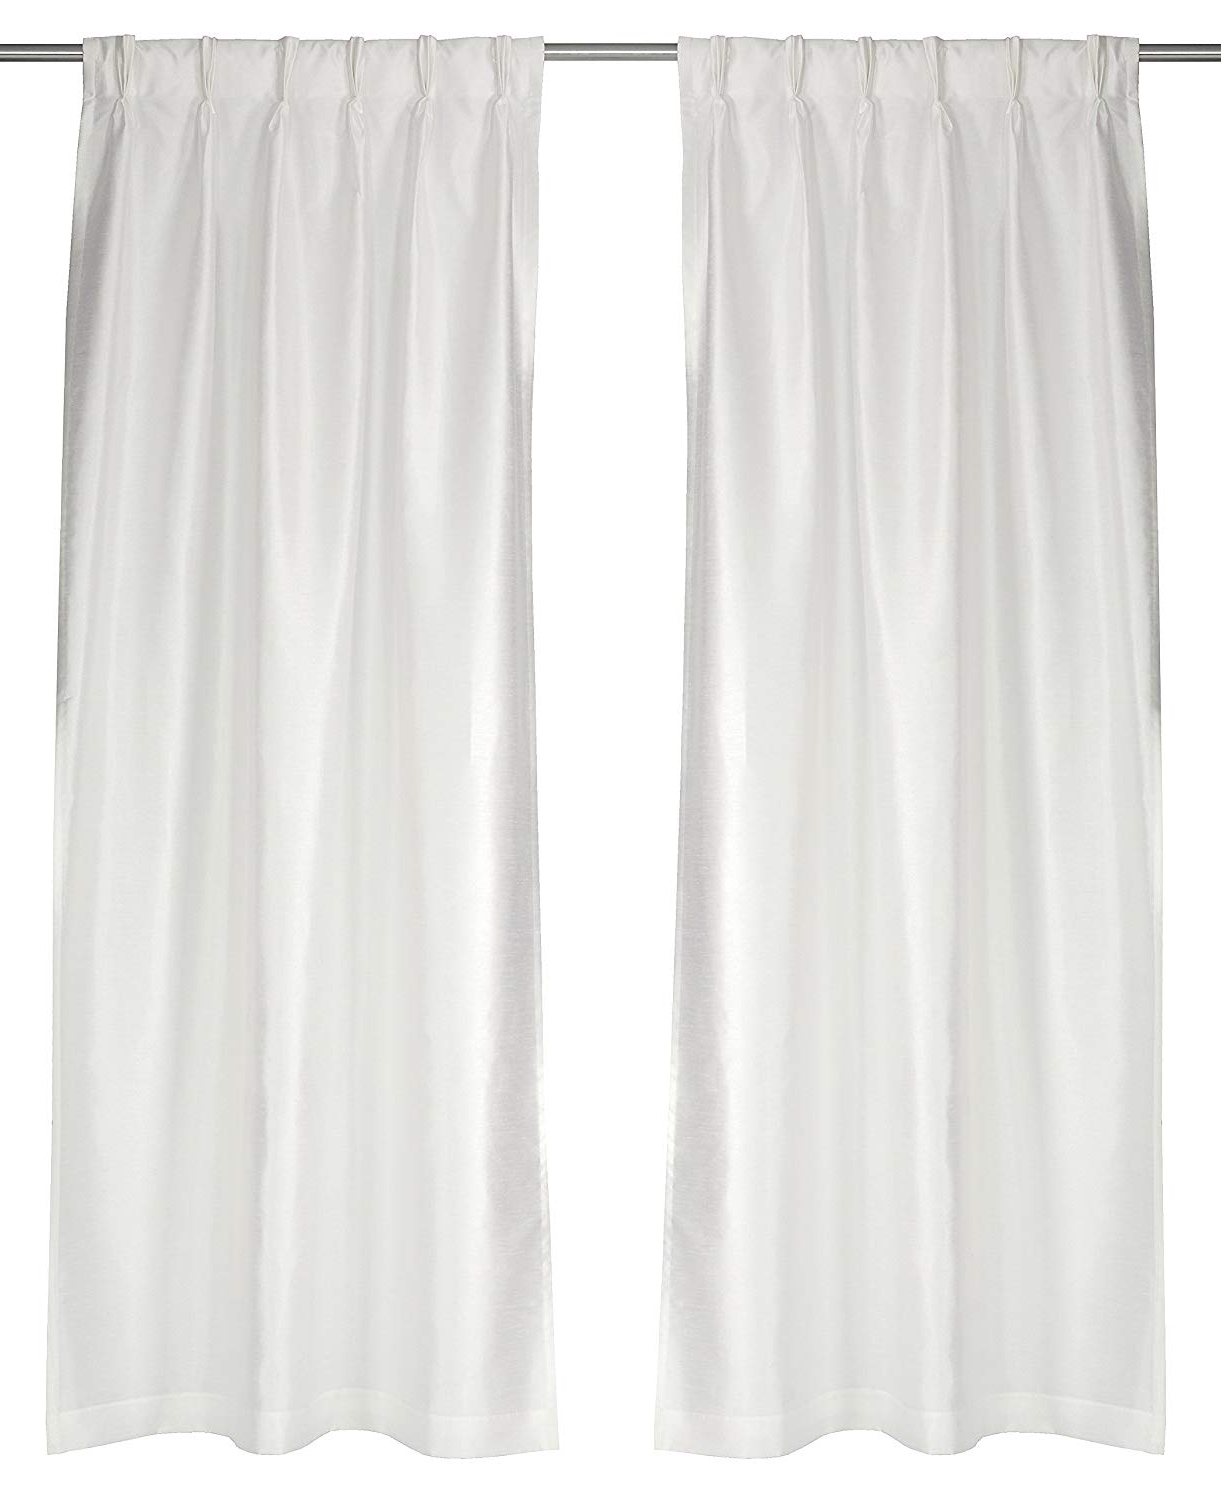 Amazon: Lj Home Fashions 572 Zoi Lined Faux Silk Pinch In Most Up To Date Double Pinch Pleat Top Curtain Panel Pairs (View 18 of 20)